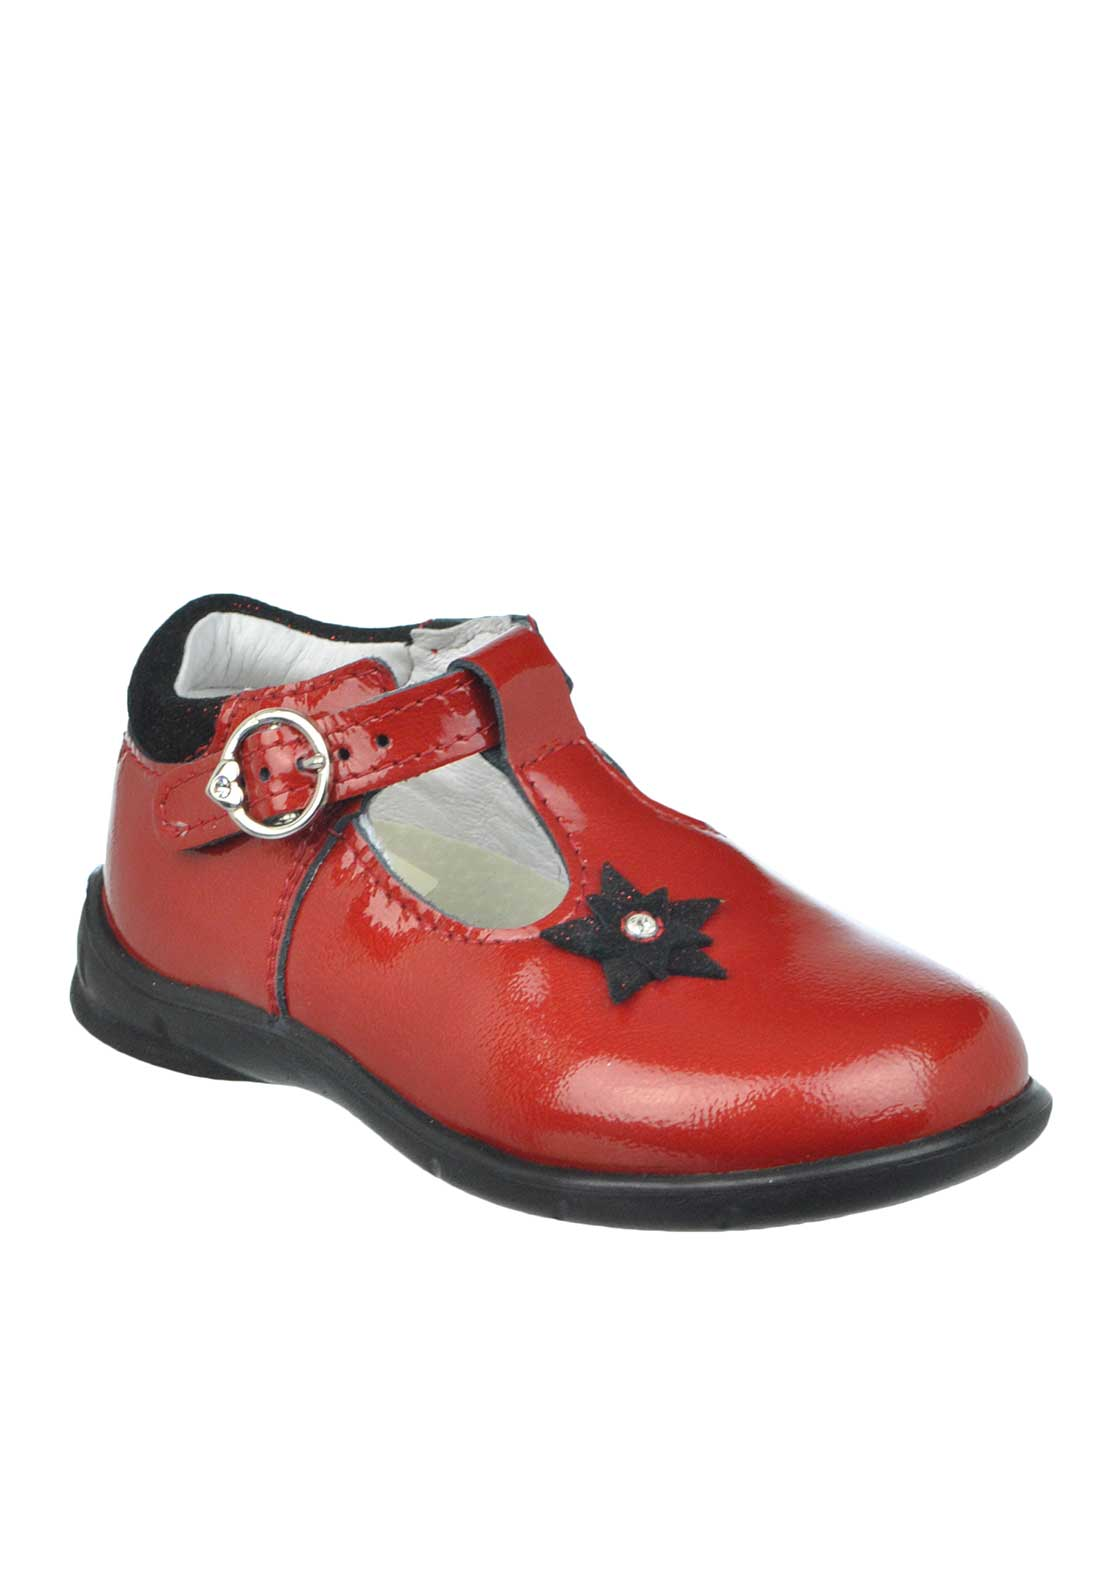 Pepino by Ricosta Baby Girls Winsy Patent Star Buckled Strap Leather Shoes, Red